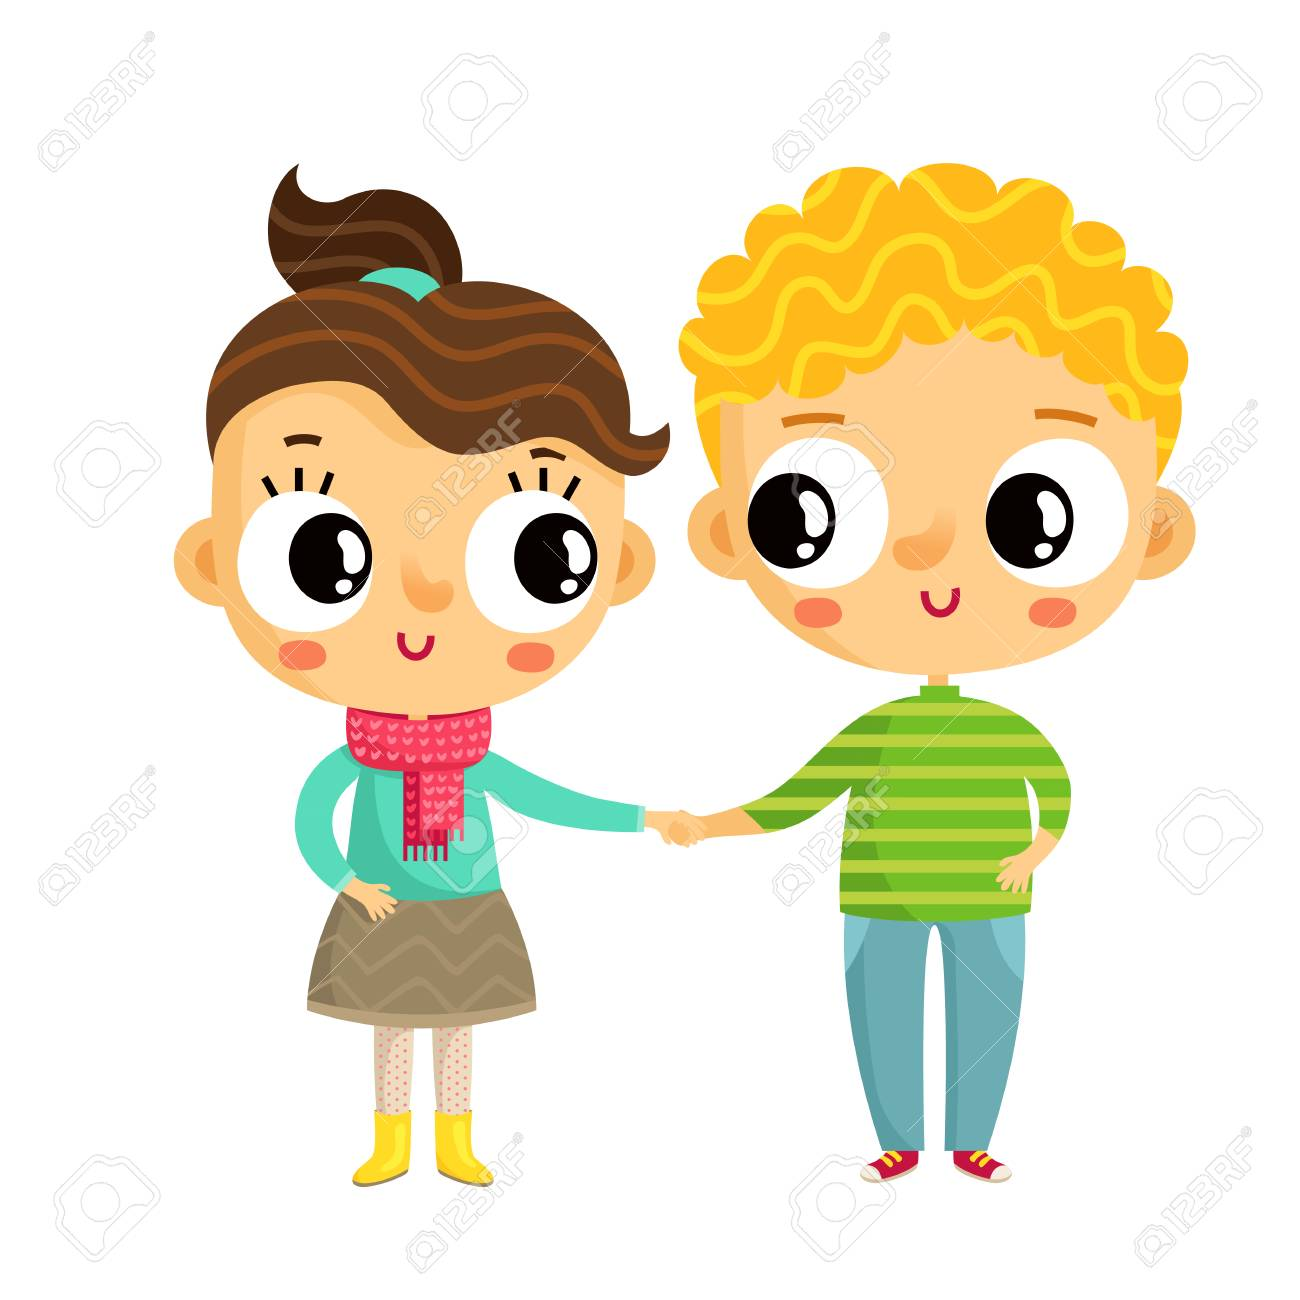 cartoon vector girl and boy holding hands cute characters isolated rh 123rf com